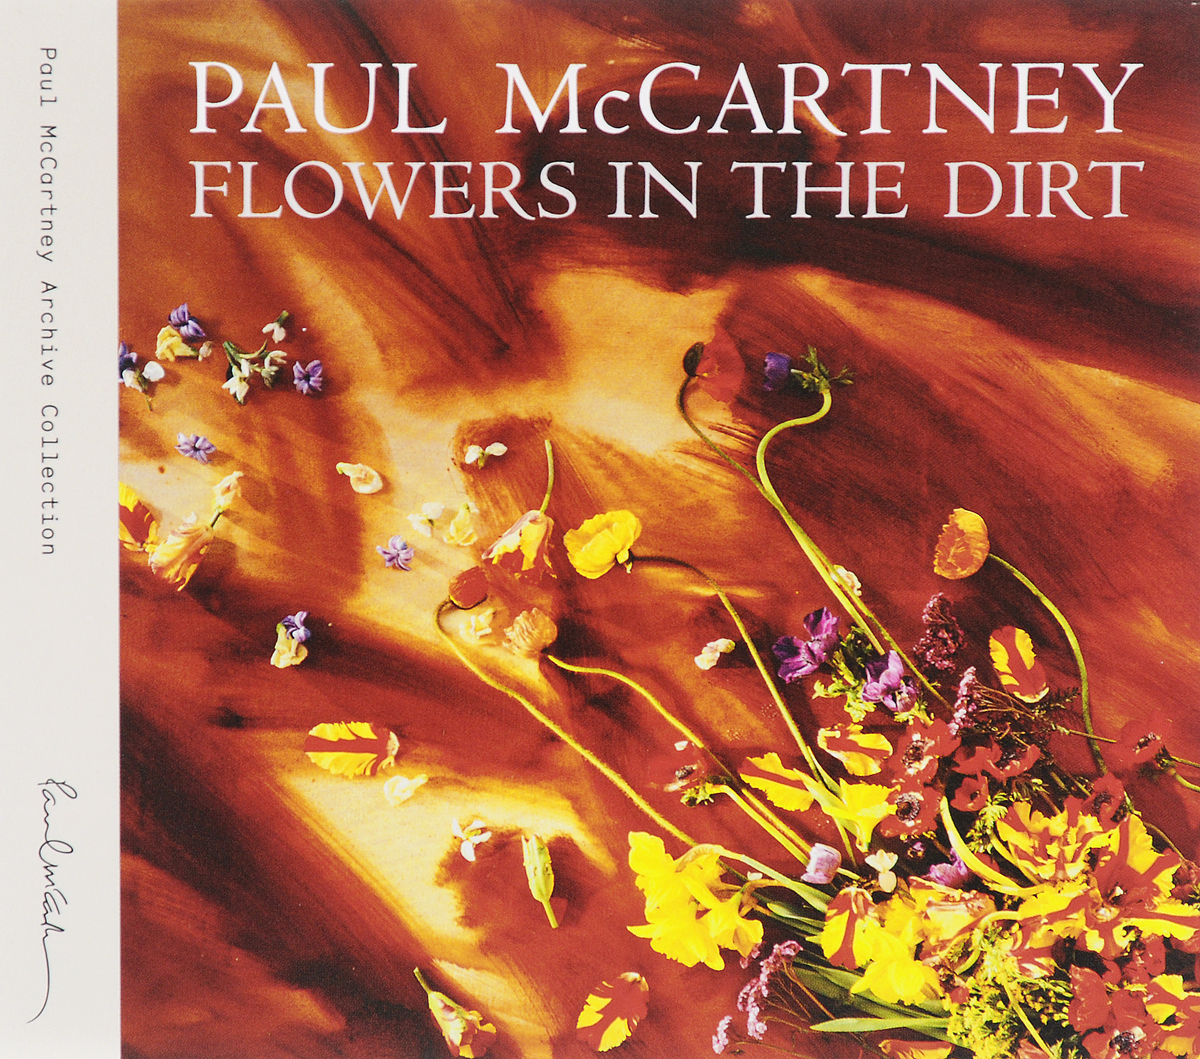 Пол Маккартни Paul McCartney. Flowers In The Dirt. Special Edition (2 CD) пол маккартни paul mccartney flowers in the dirt special edition 2 cd